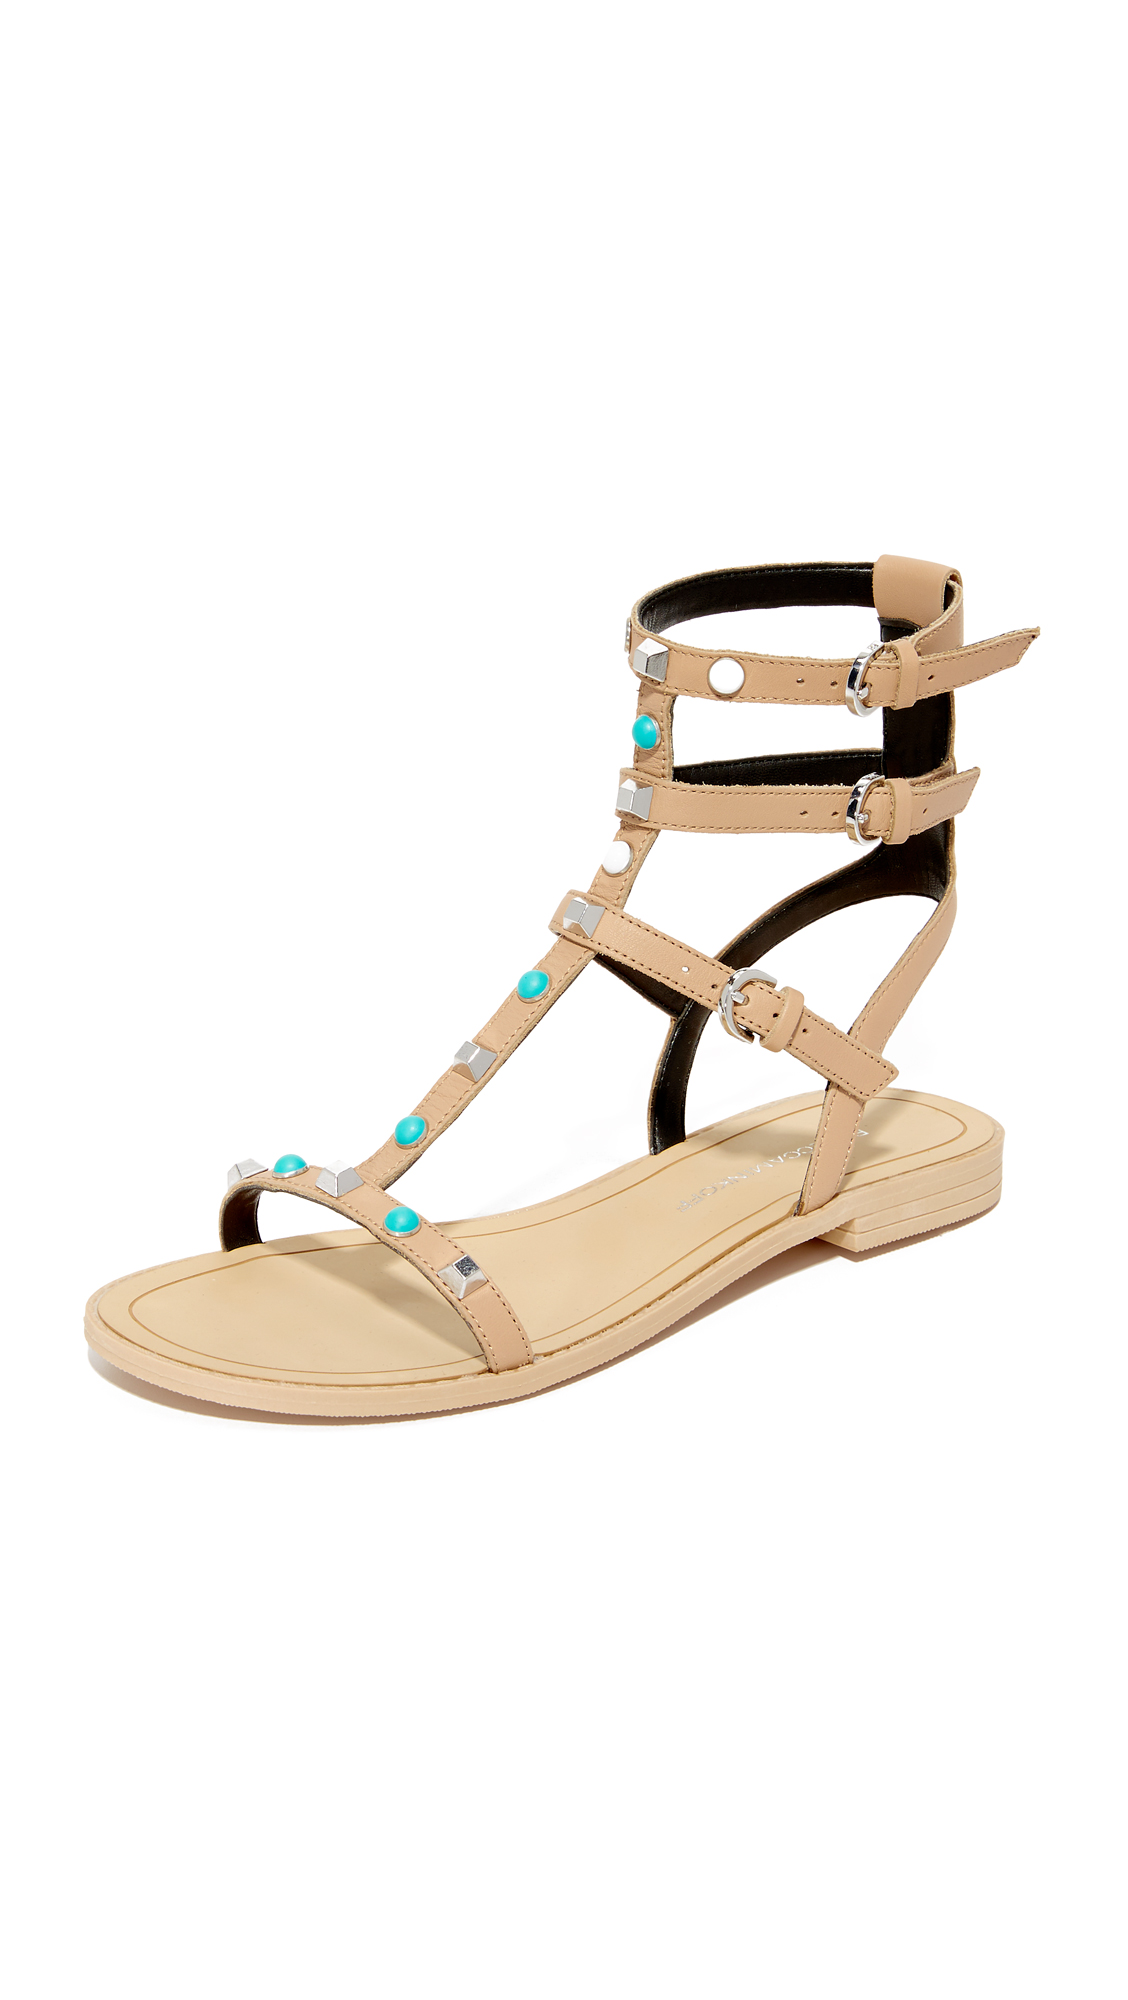 Photo of Rebecca Minkoff Georgina Too Studded Sandals Nude - Rebecca Minkoff online